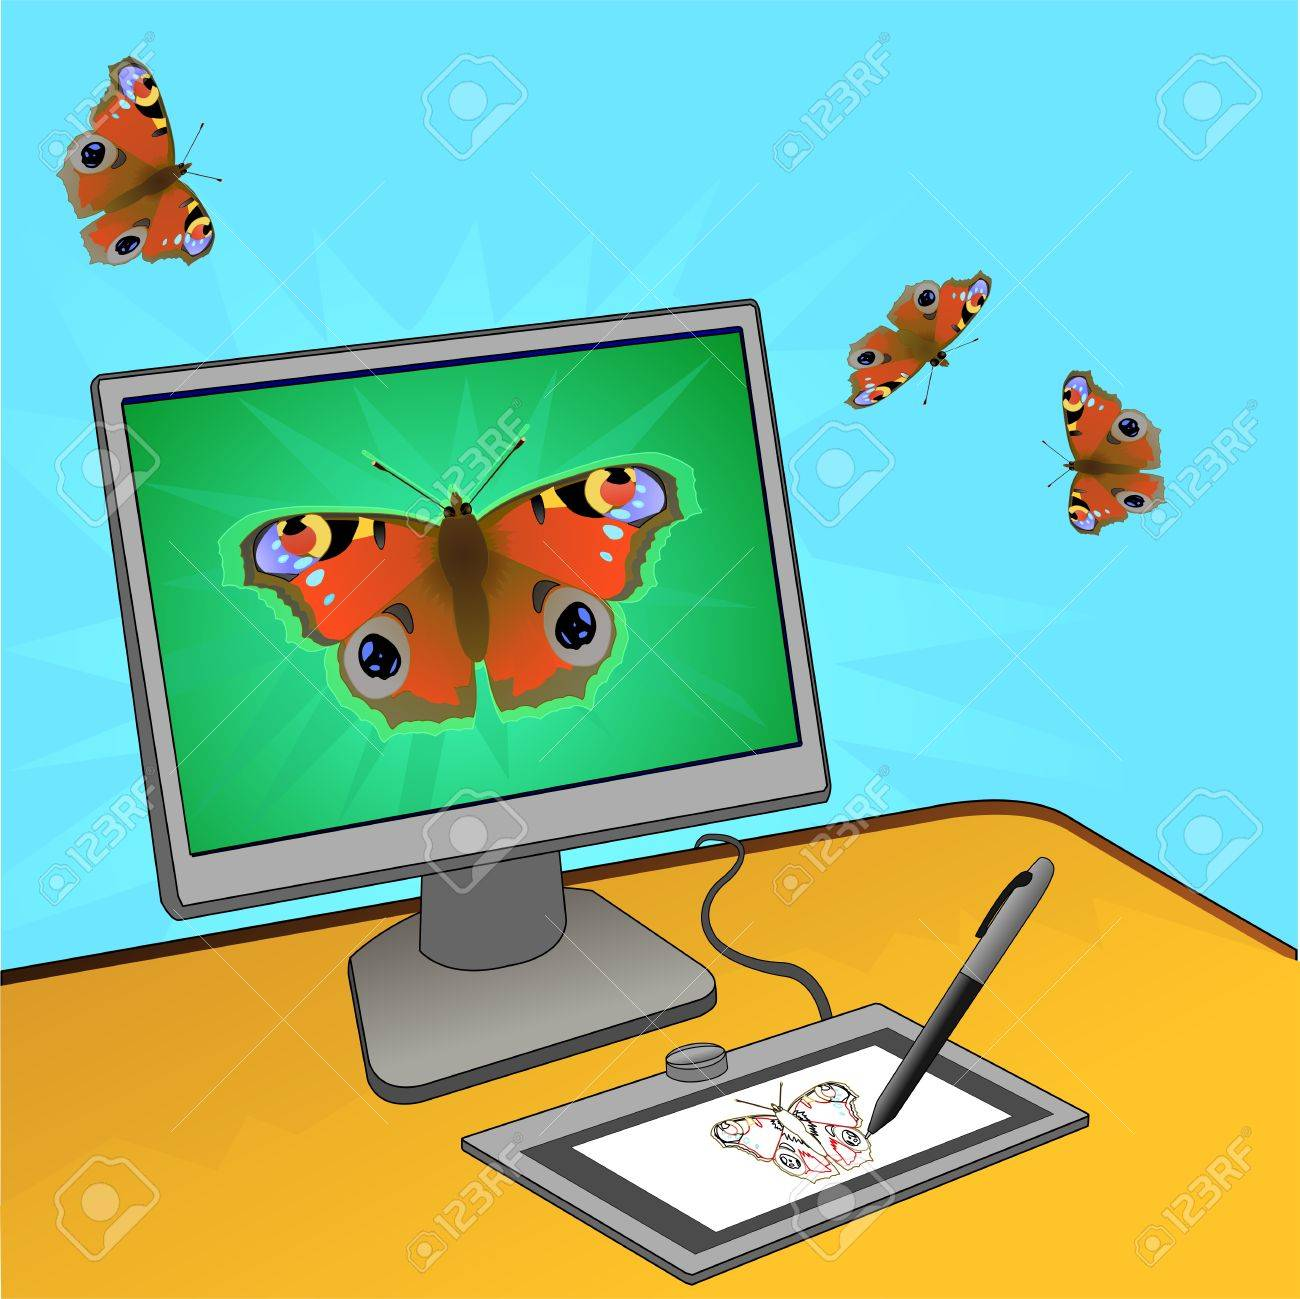 butterfly computer design on illustrator work place illustration